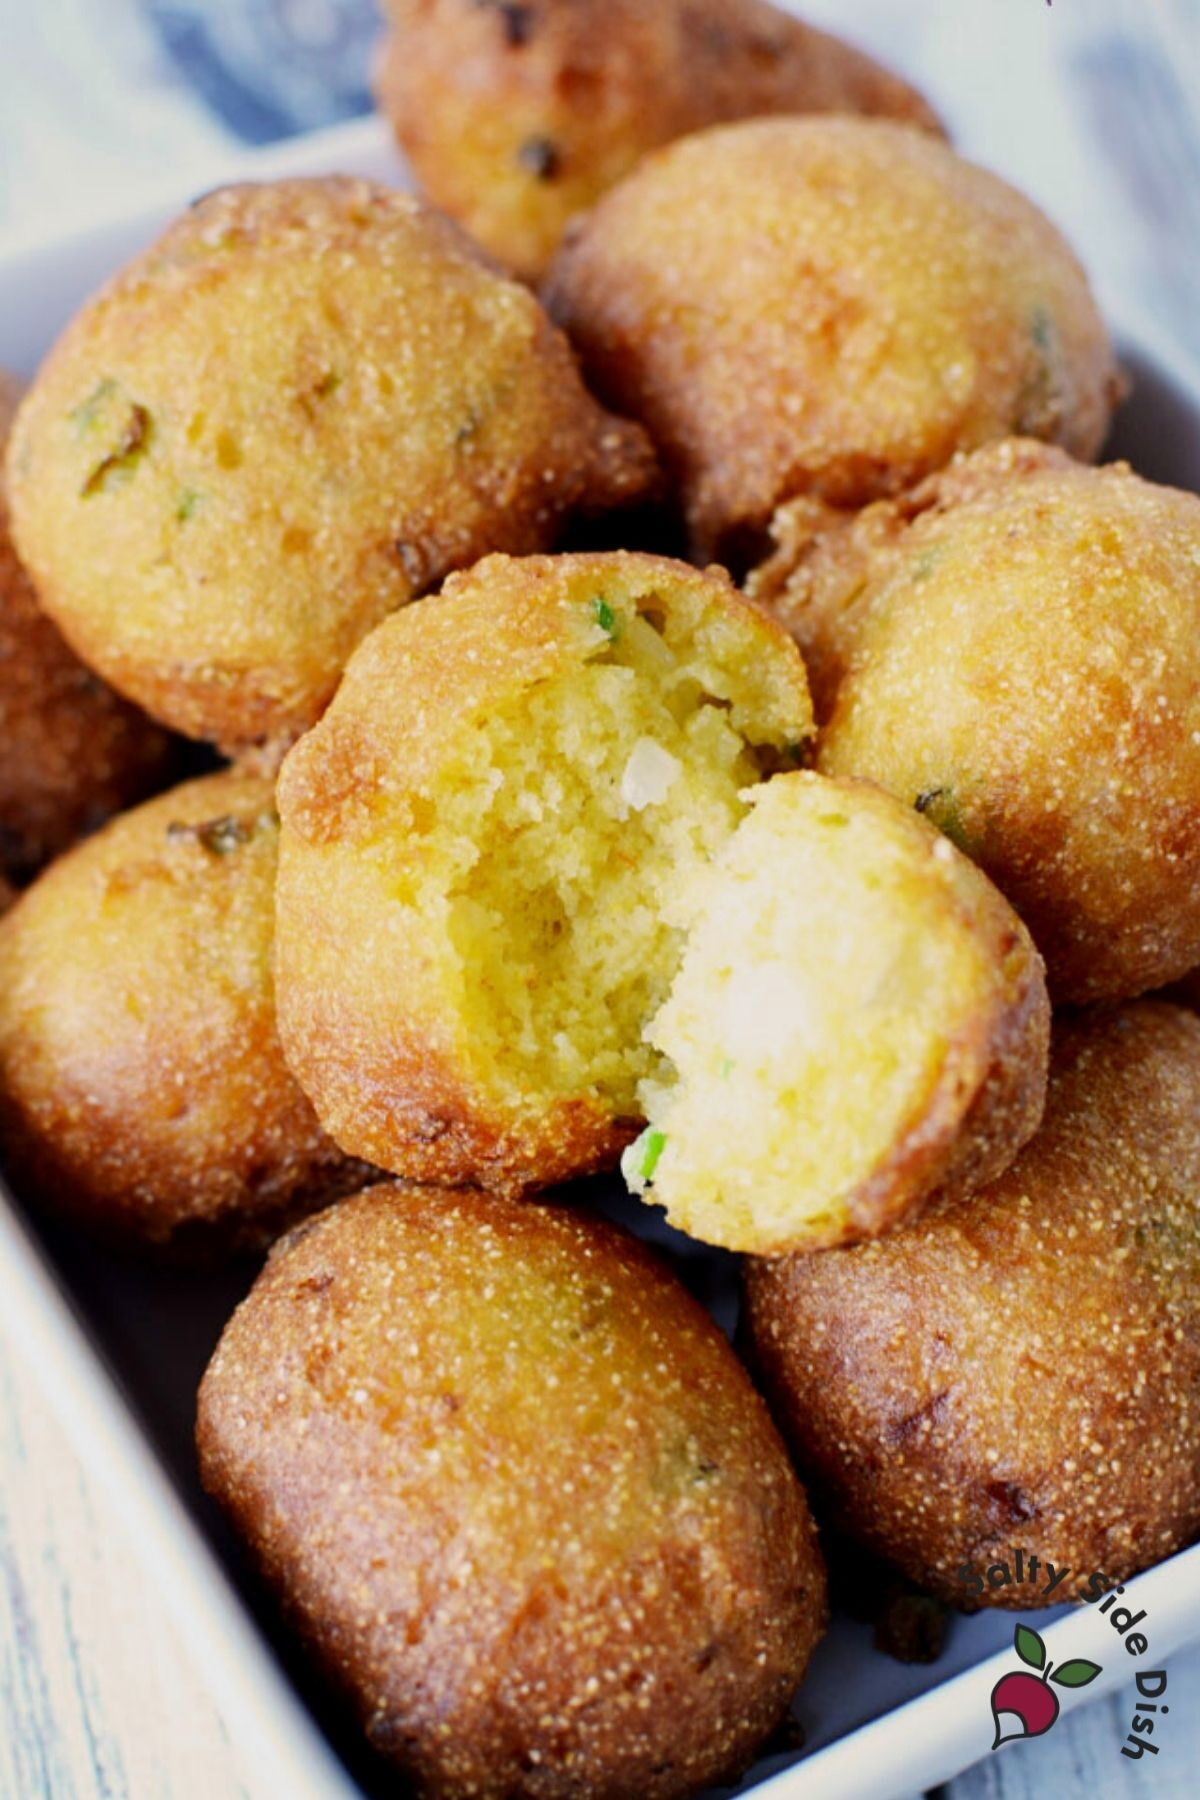 pile of hush puppies on a white plate with one split open showing a center.